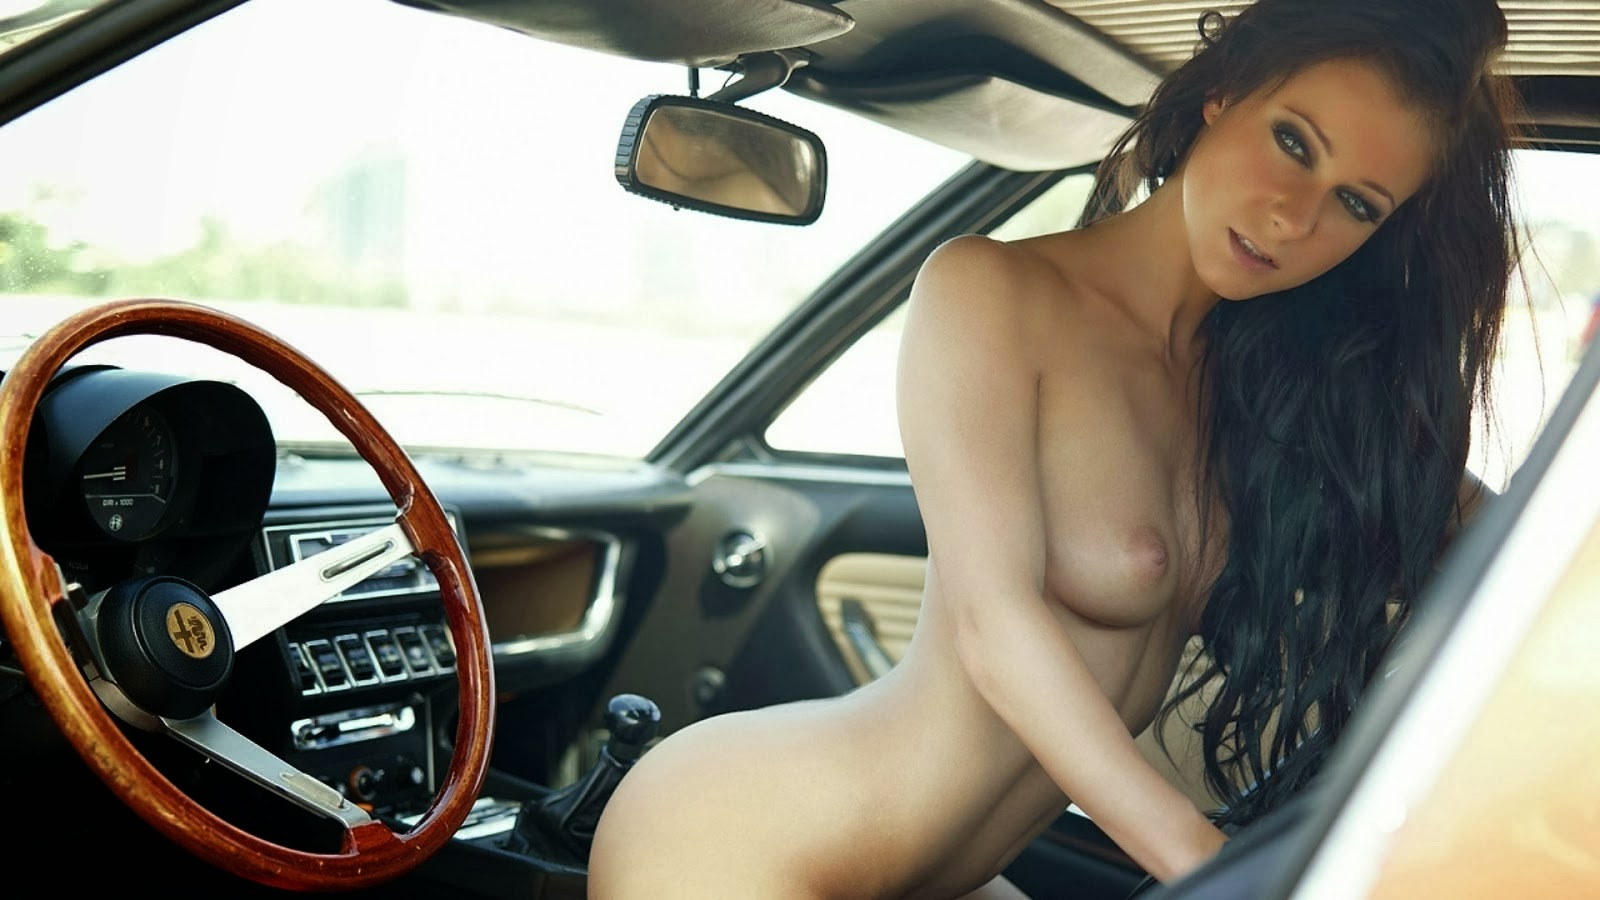 Melisa Mendiny Naked In Car Wallpaper